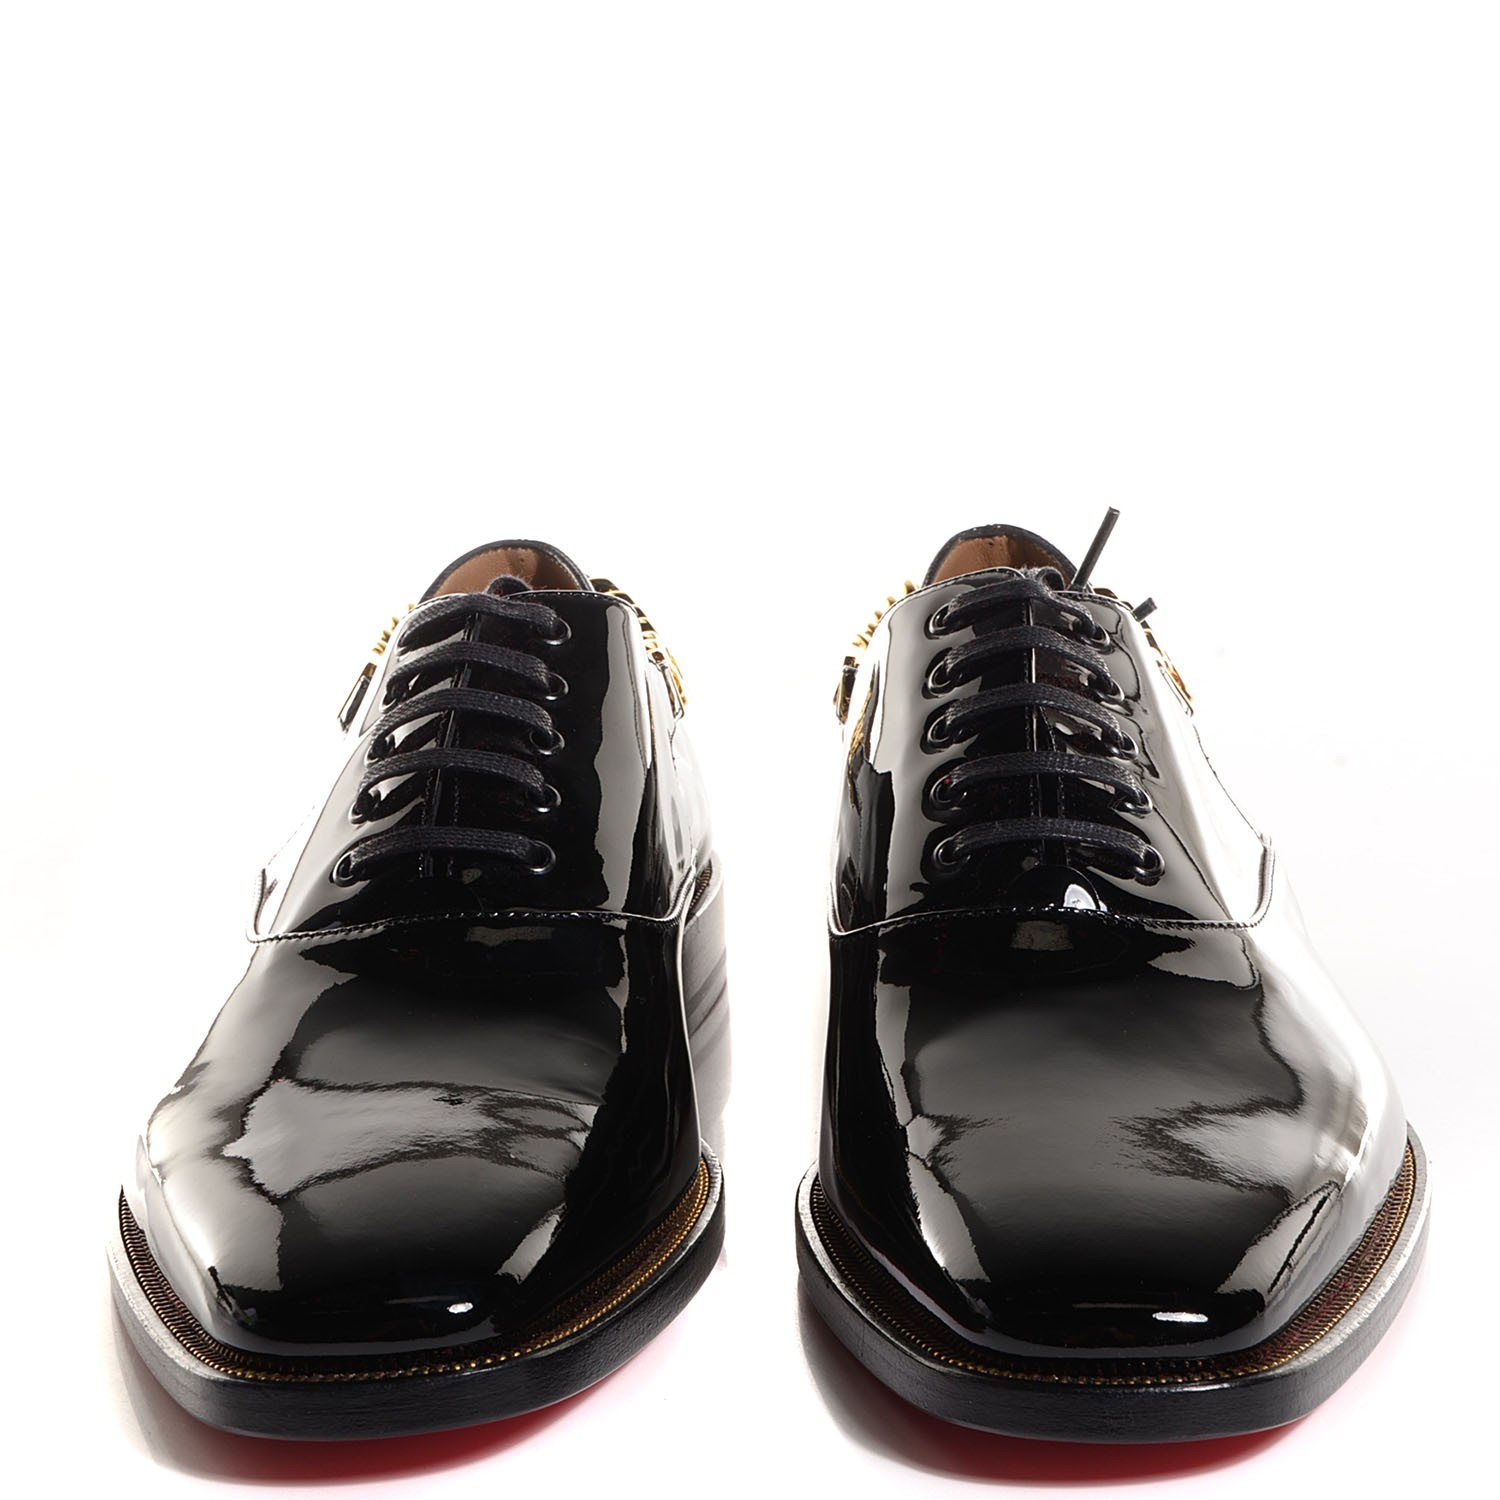 sale retailer a1e8d d3f1d CHRISTIAN LOUBOUTIN Mens Patent Stage Flat Oxfords 44 Black ...